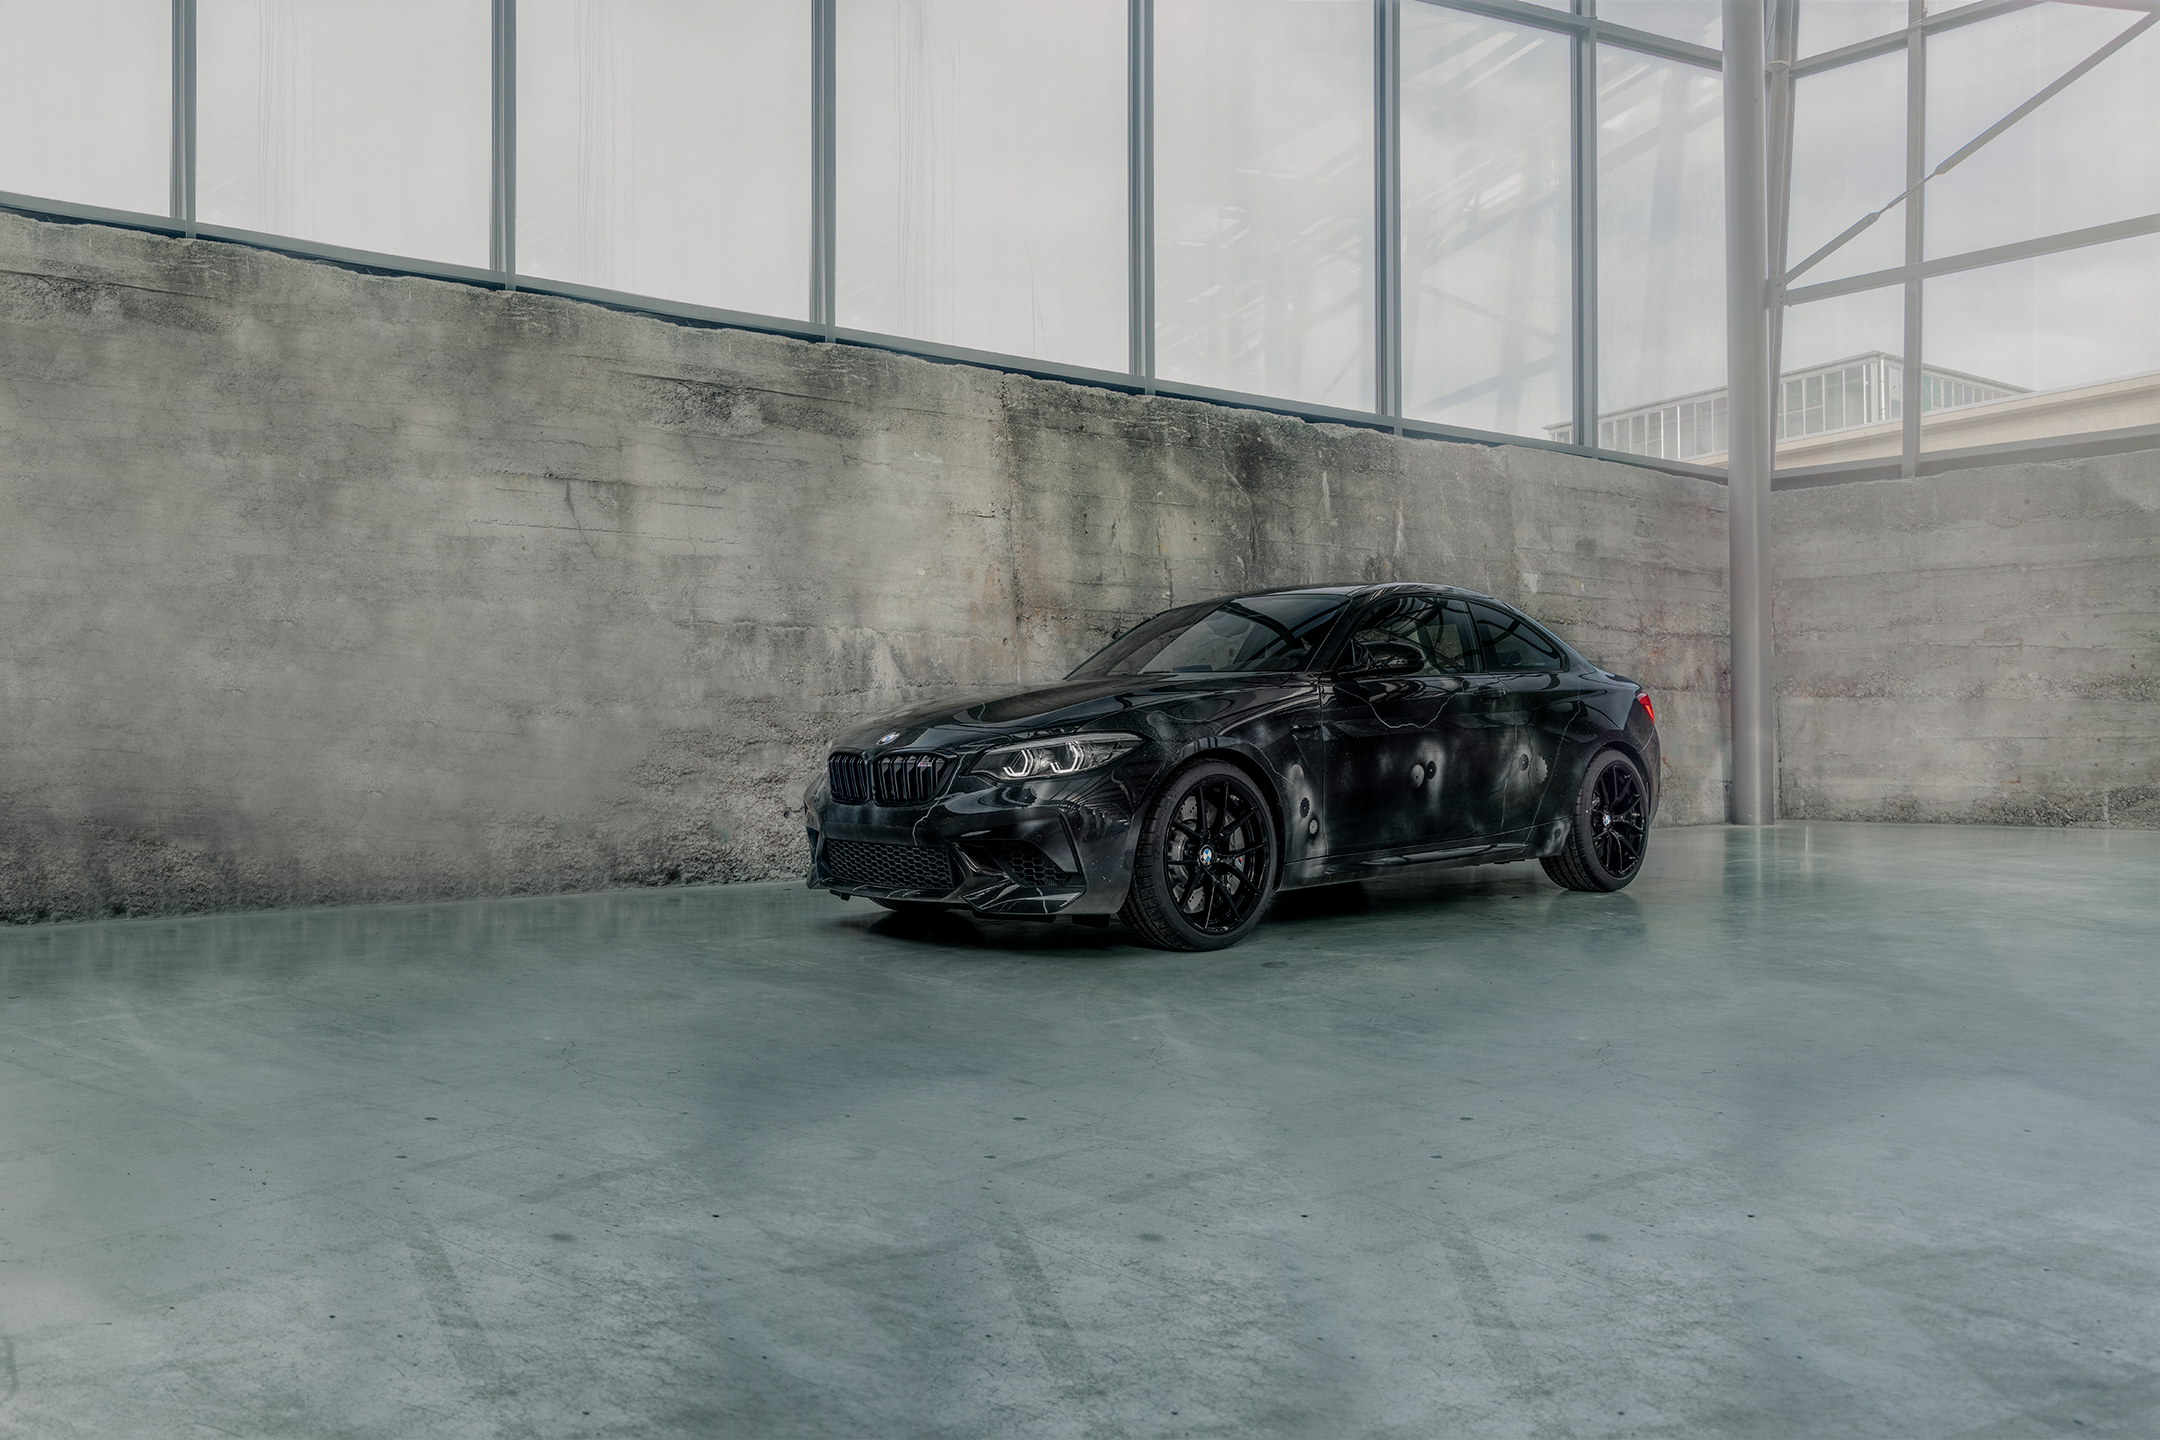 BMW M2 by FUTURA 2000 - Street Art Car - 2020 - front side-face / profil avant